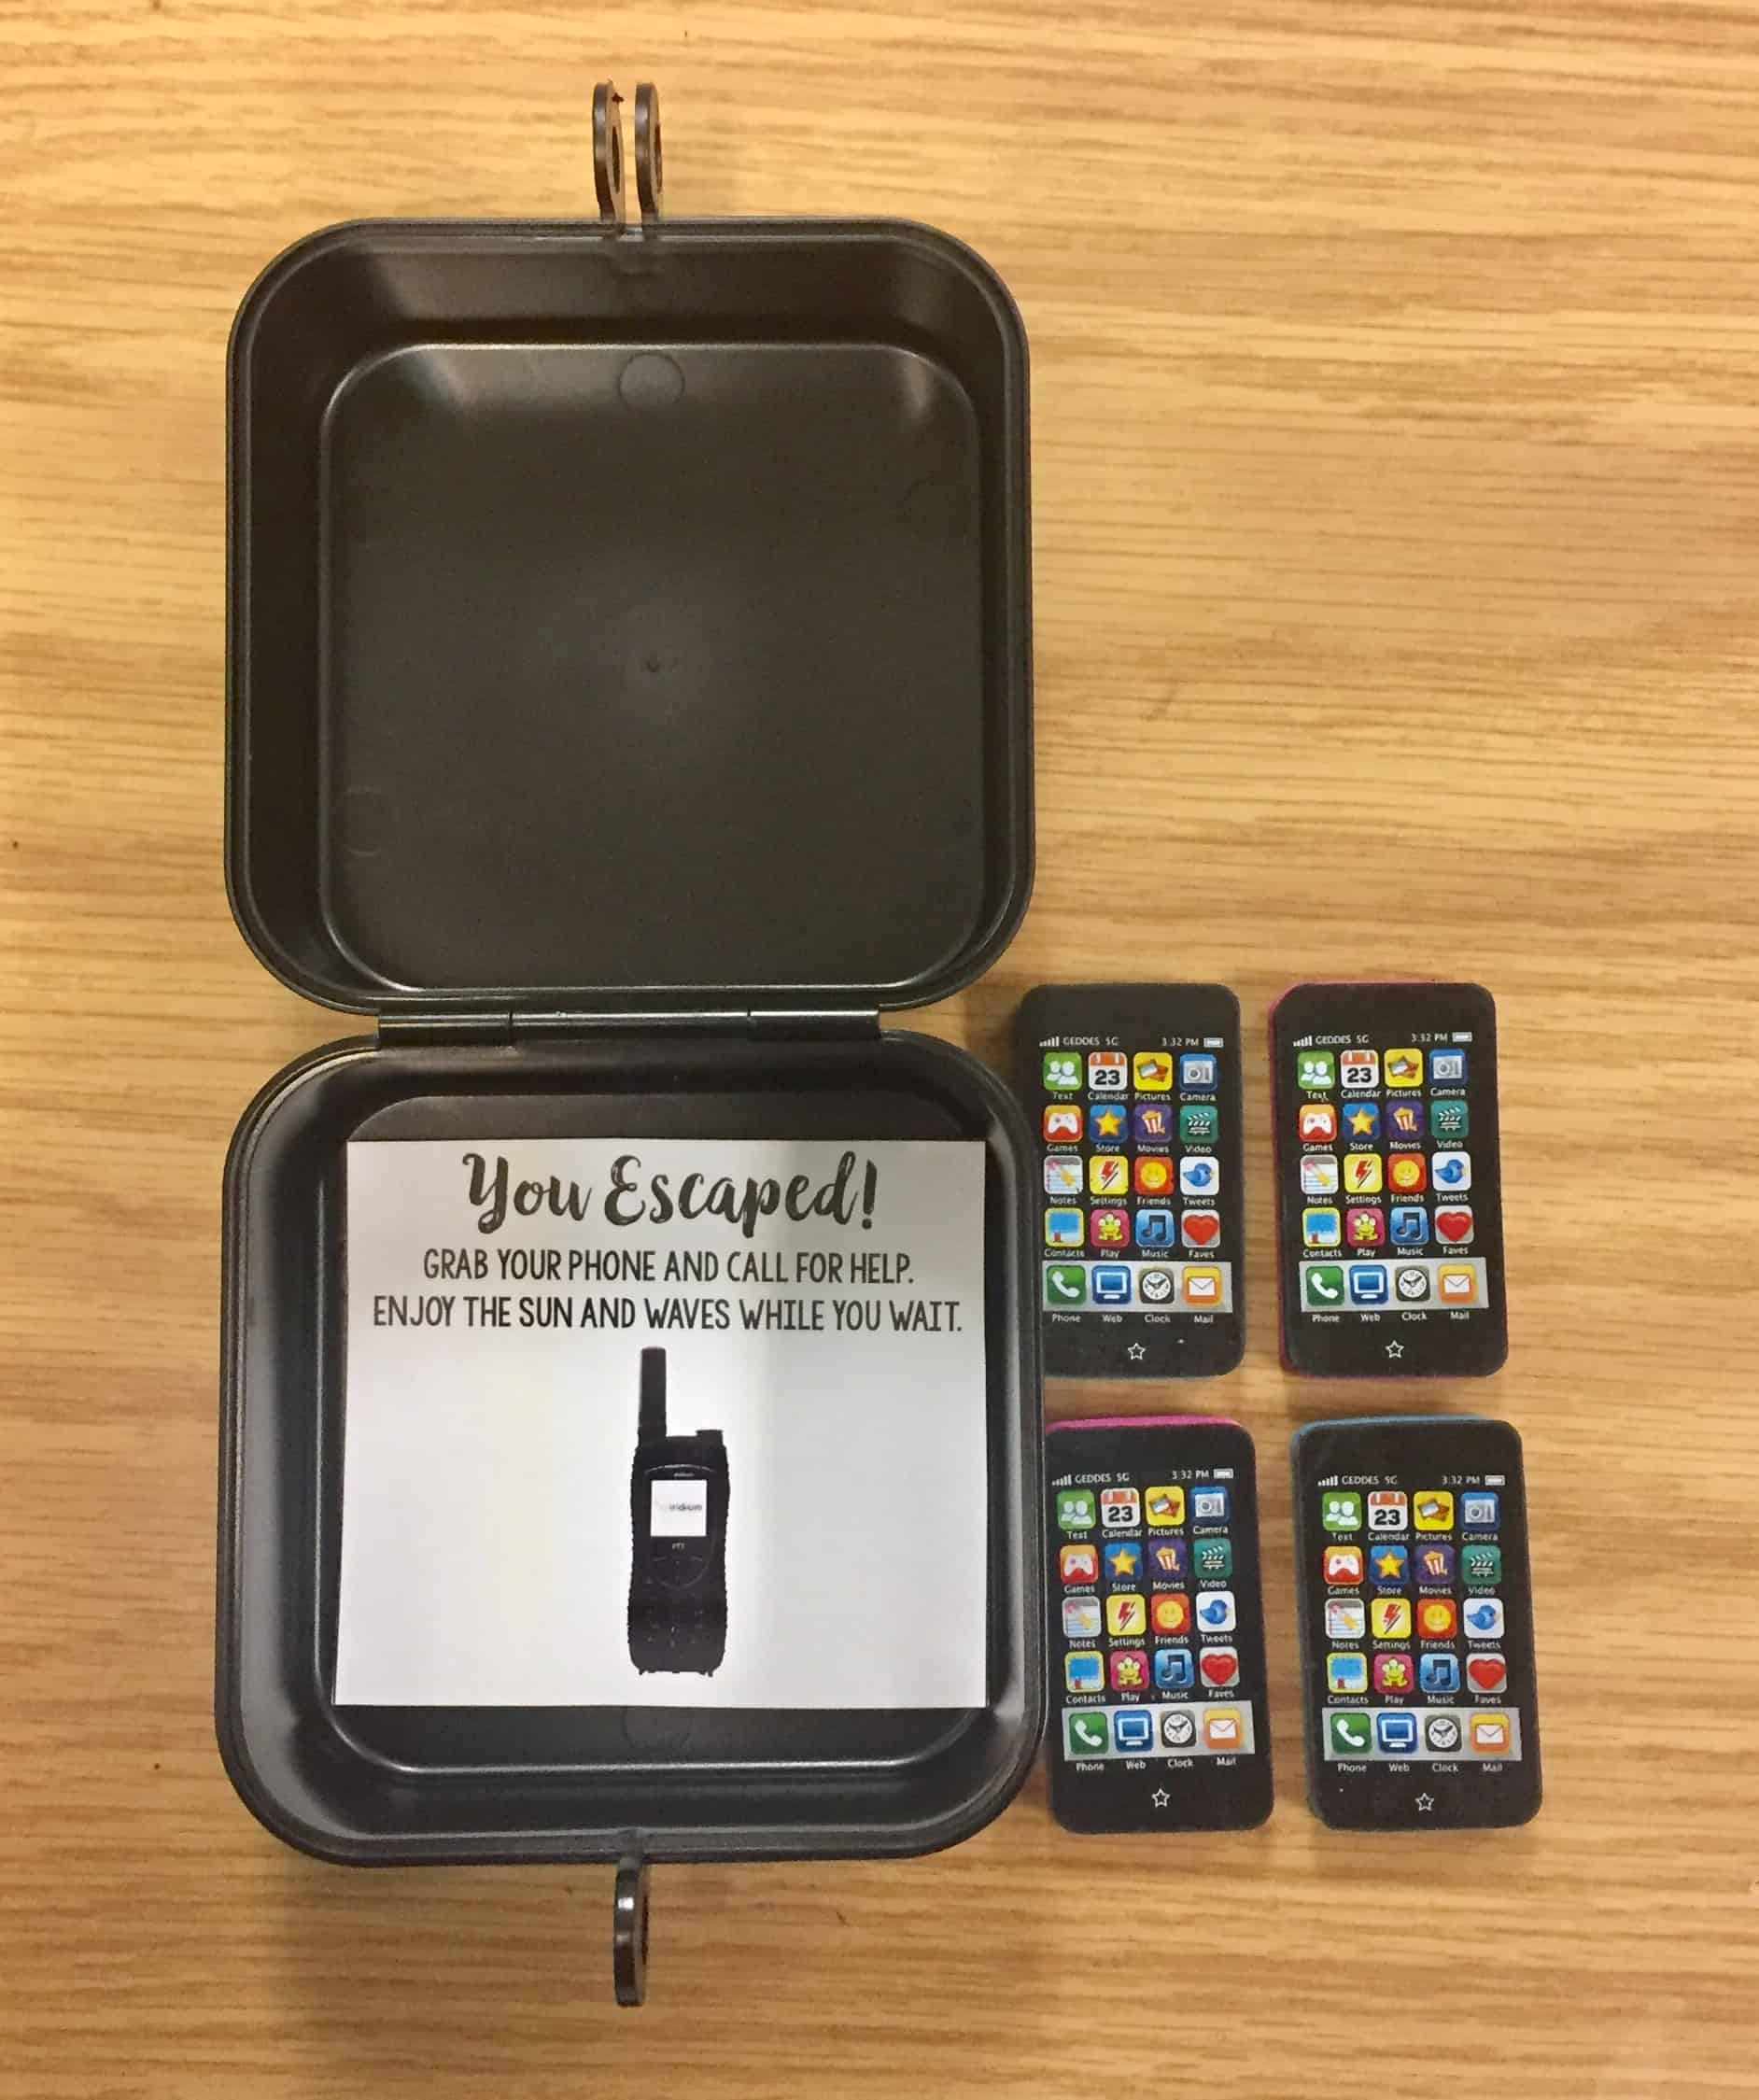 Escape Room container with toy mobile phones on a desk